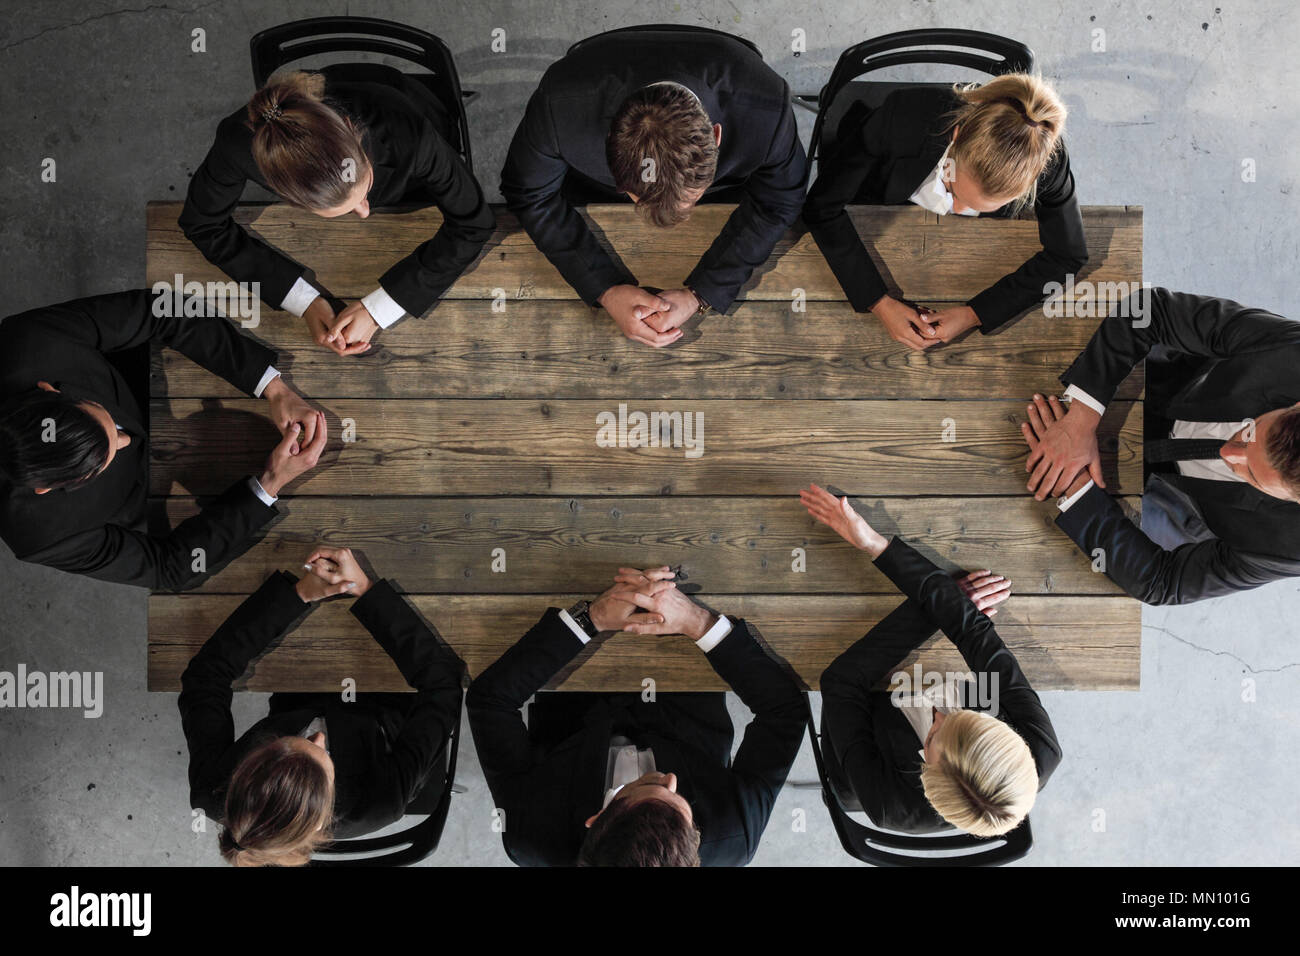 Business meeting concept, people in formal wear sitting around wooden table - Stock Image